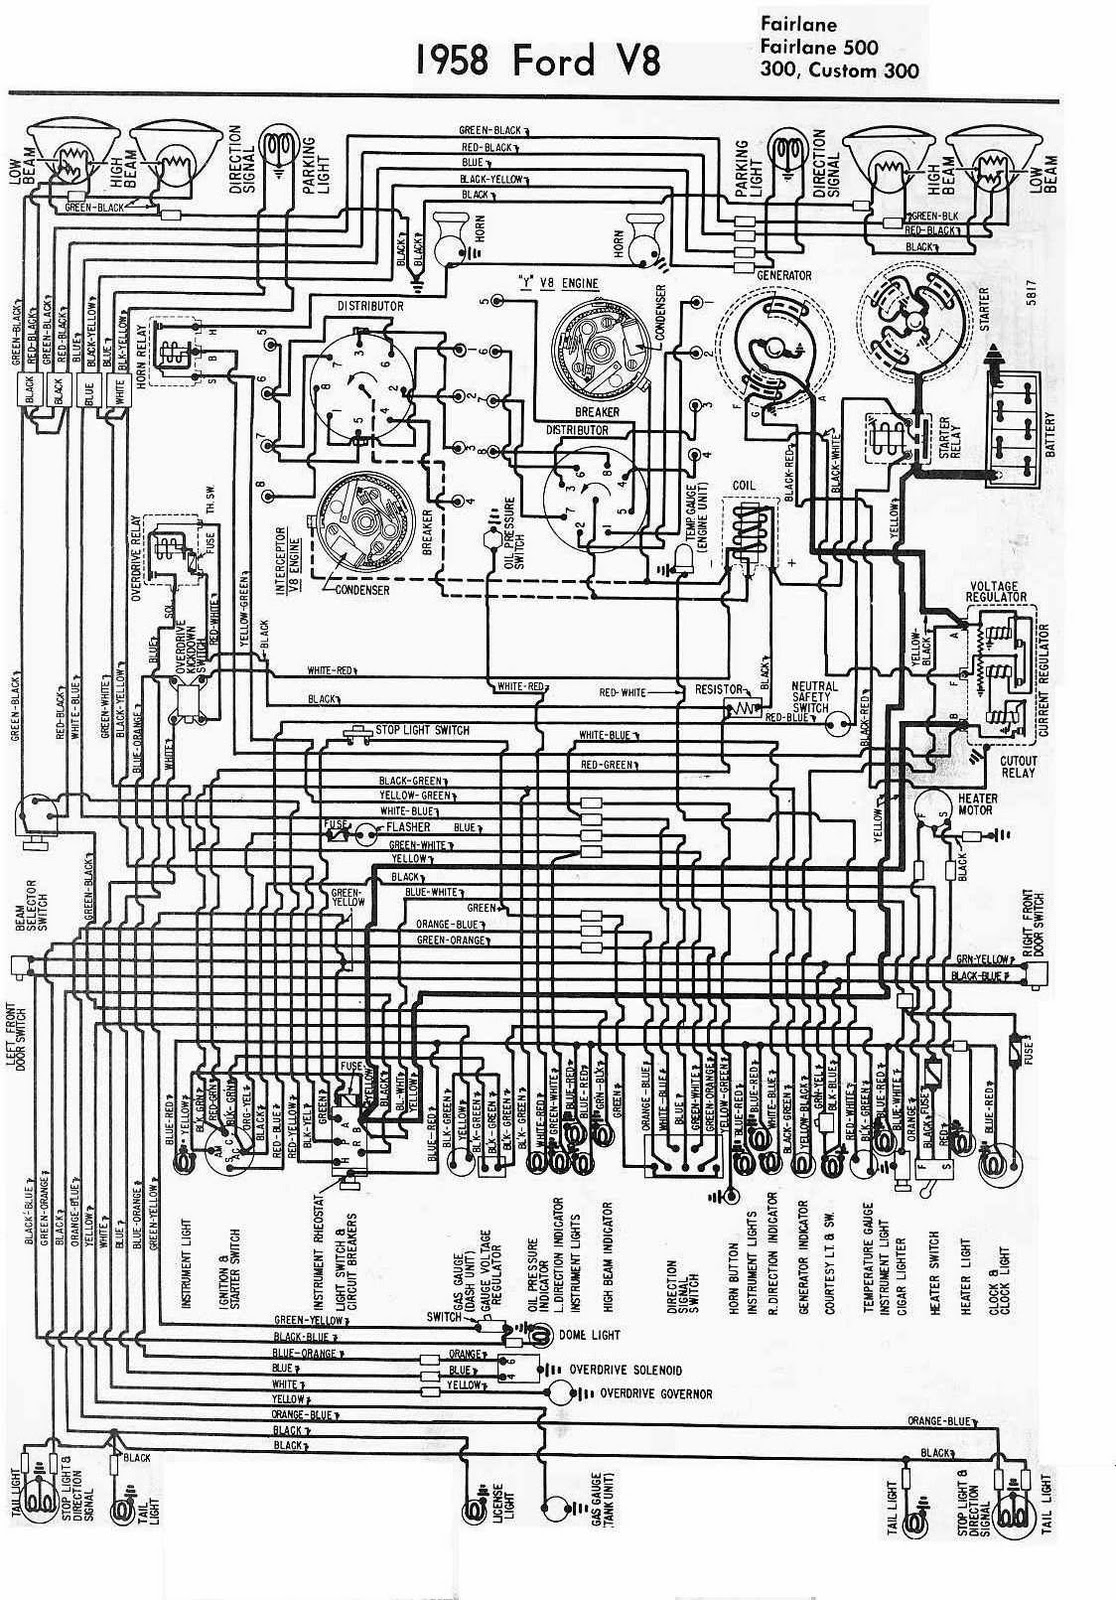 Terrific 1962 Ford F100 Wiring Diagram Gallery Best Image